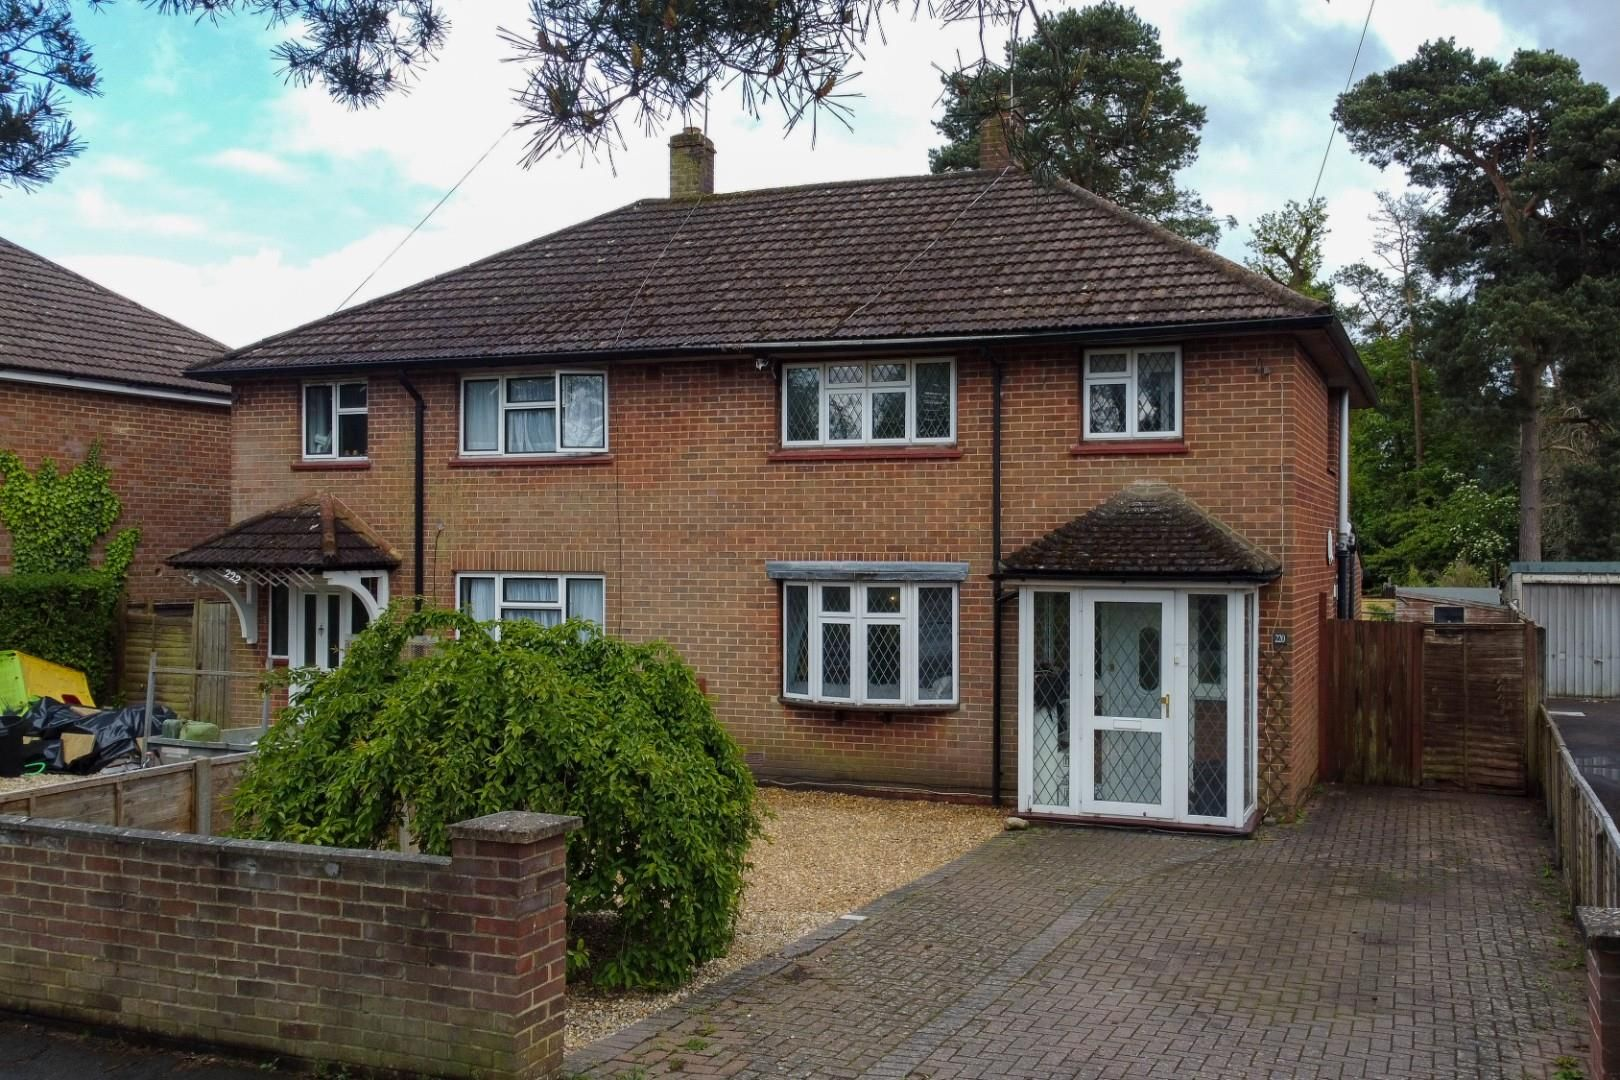 3 bed house for sale, GU15